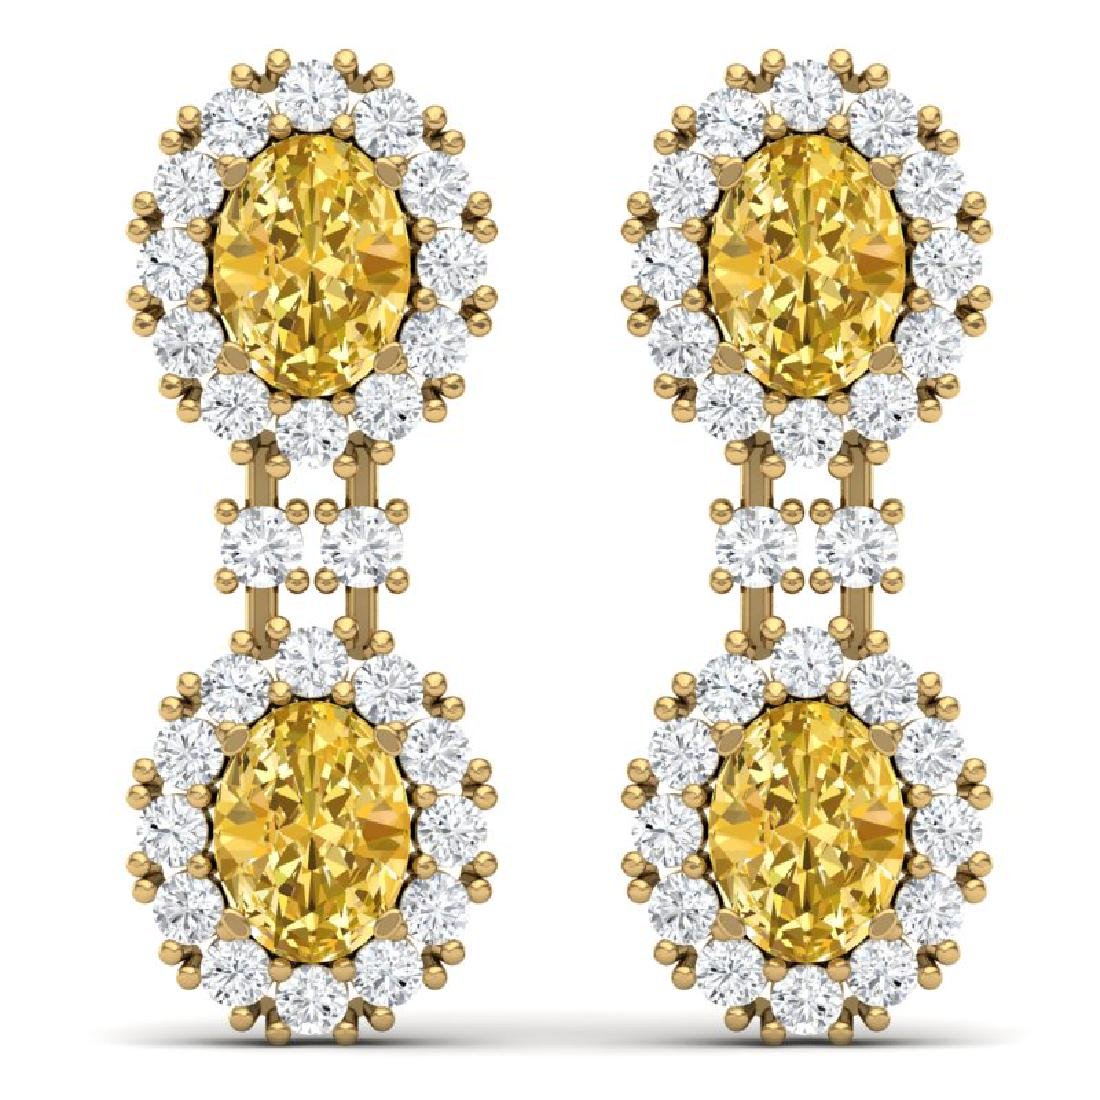 7.8 CTW Royalty Canary Citrine & VS Diamond Earrings